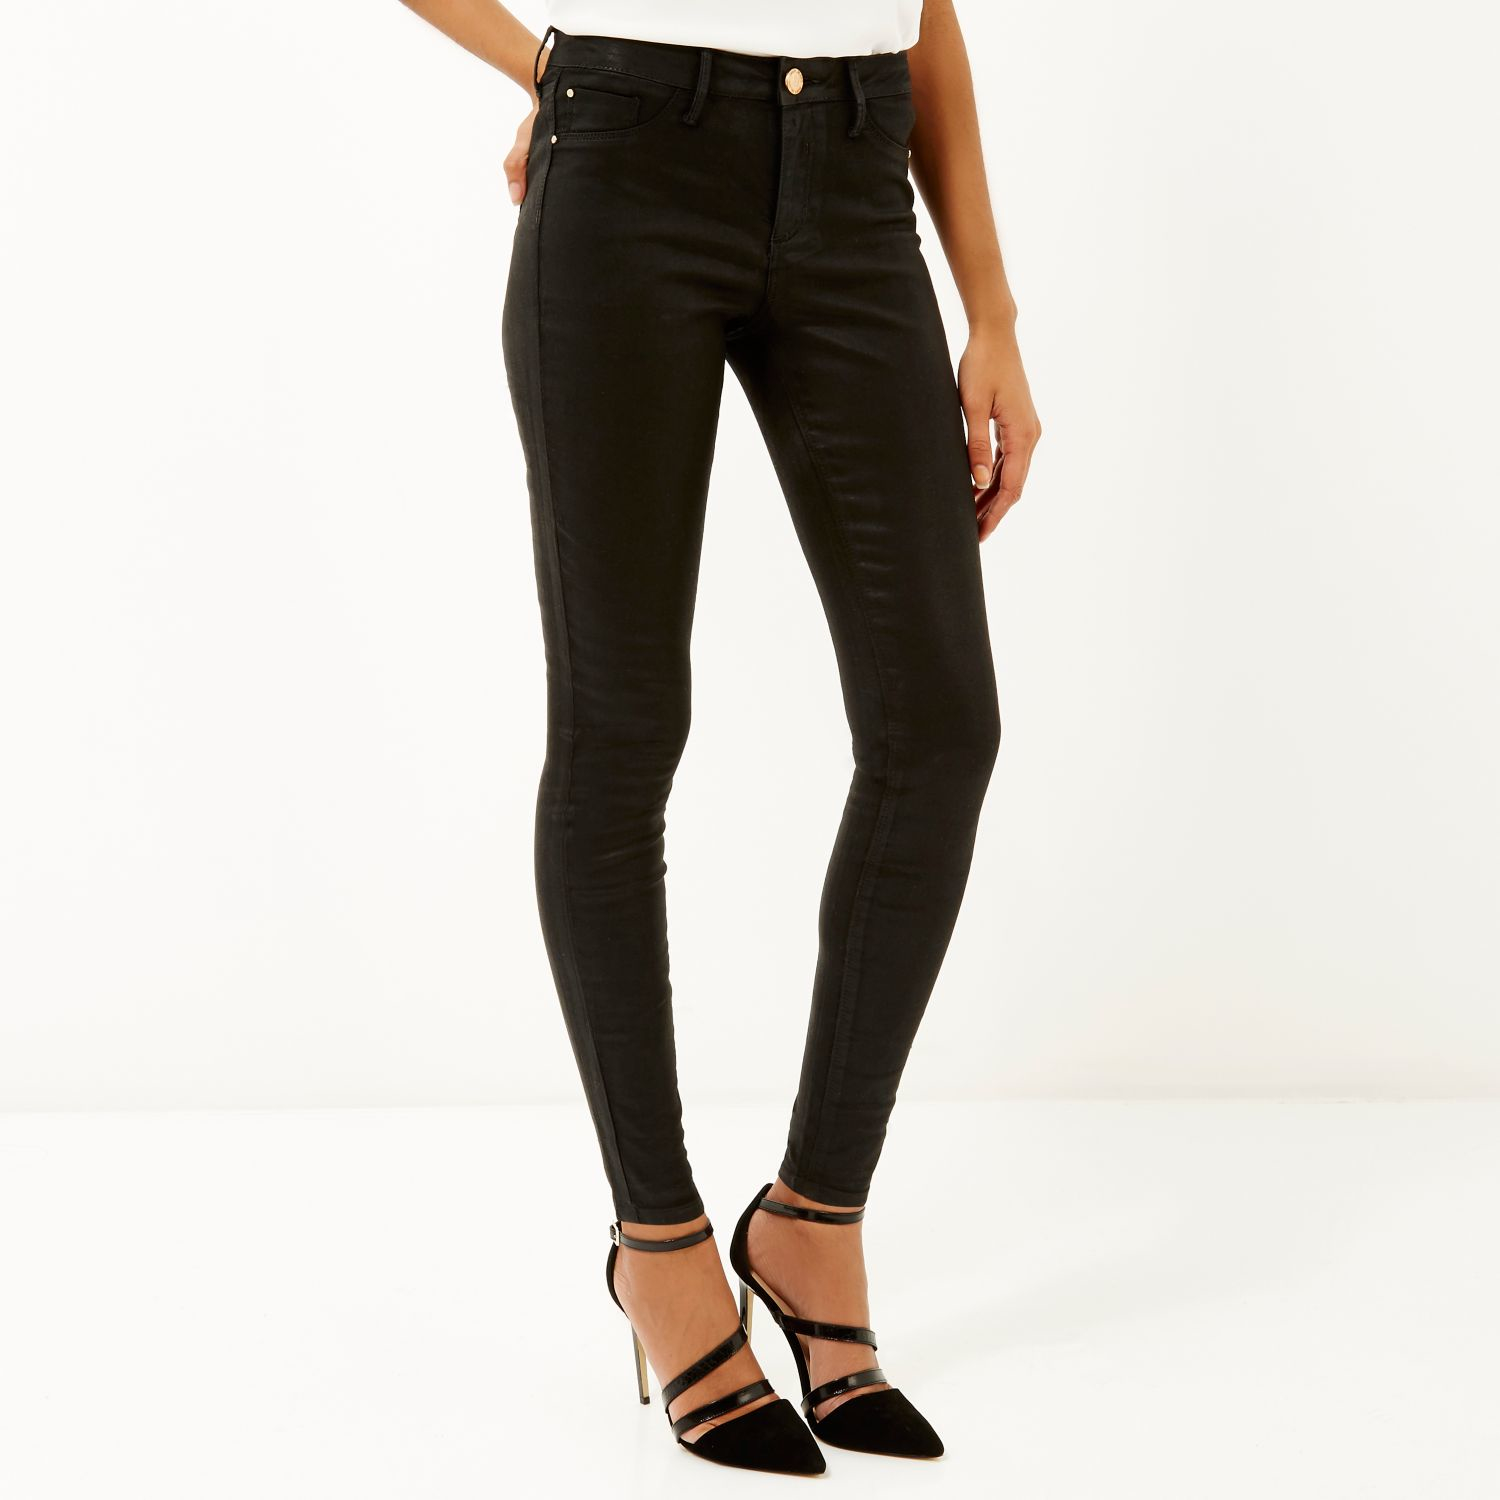 cf1cbcf84d6c6f River Island Black Coated Molly Jeggings in Black - Lyst